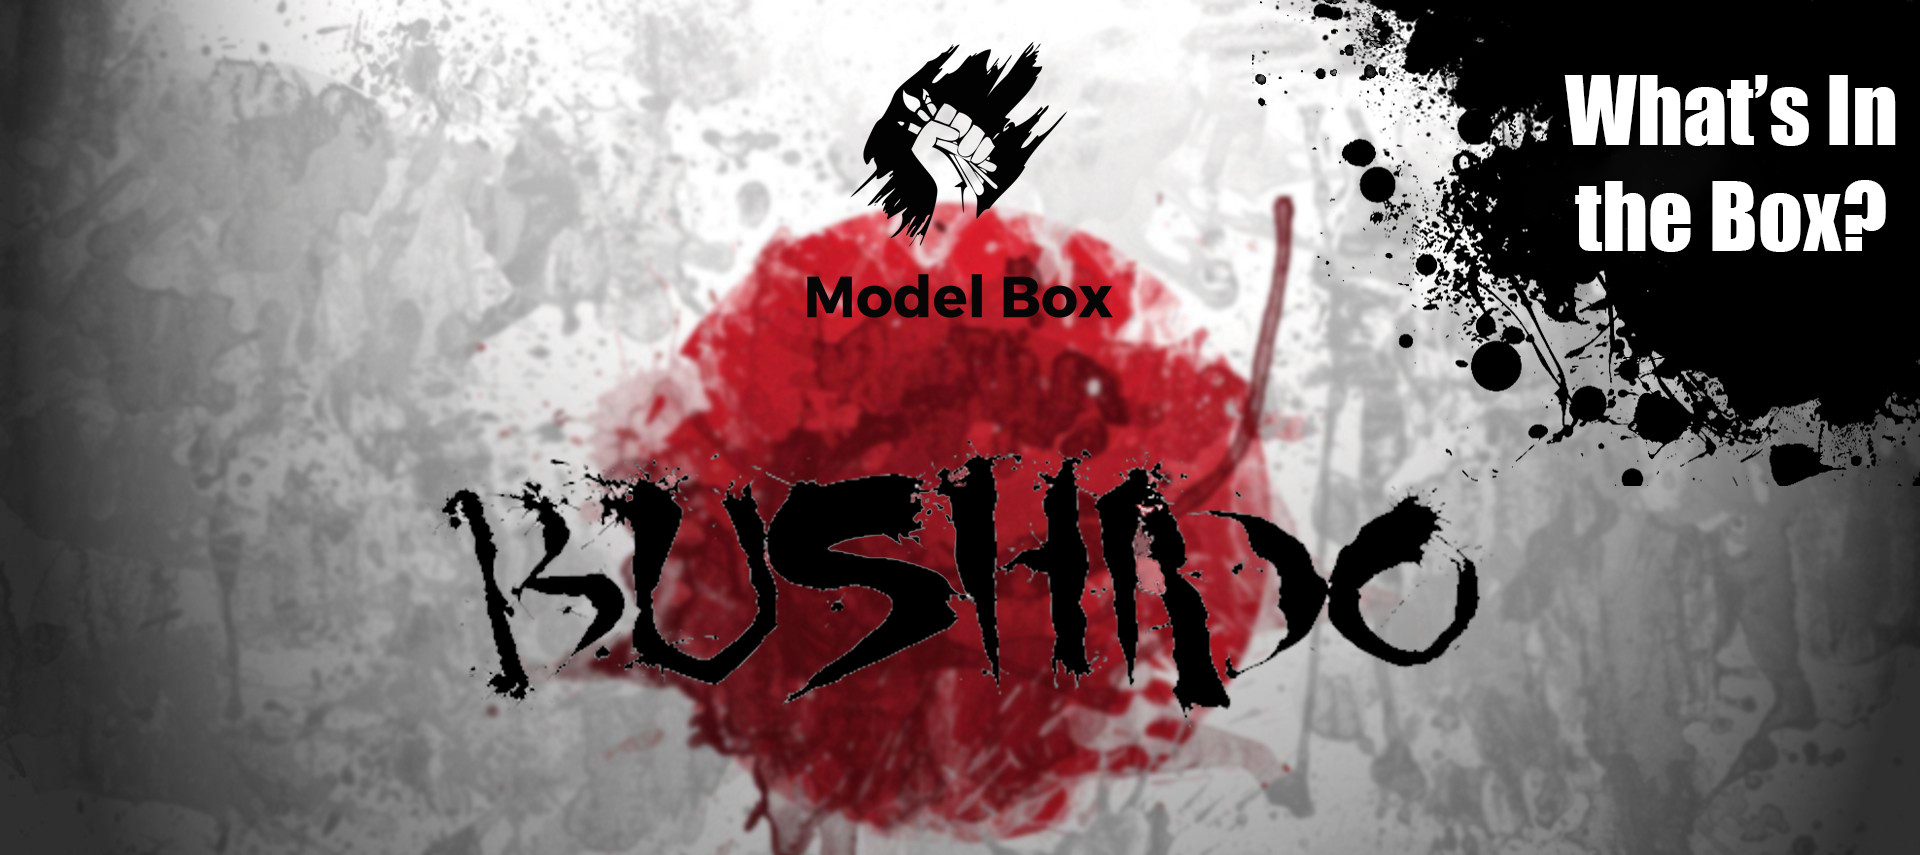 What's In The Box? Bushido January